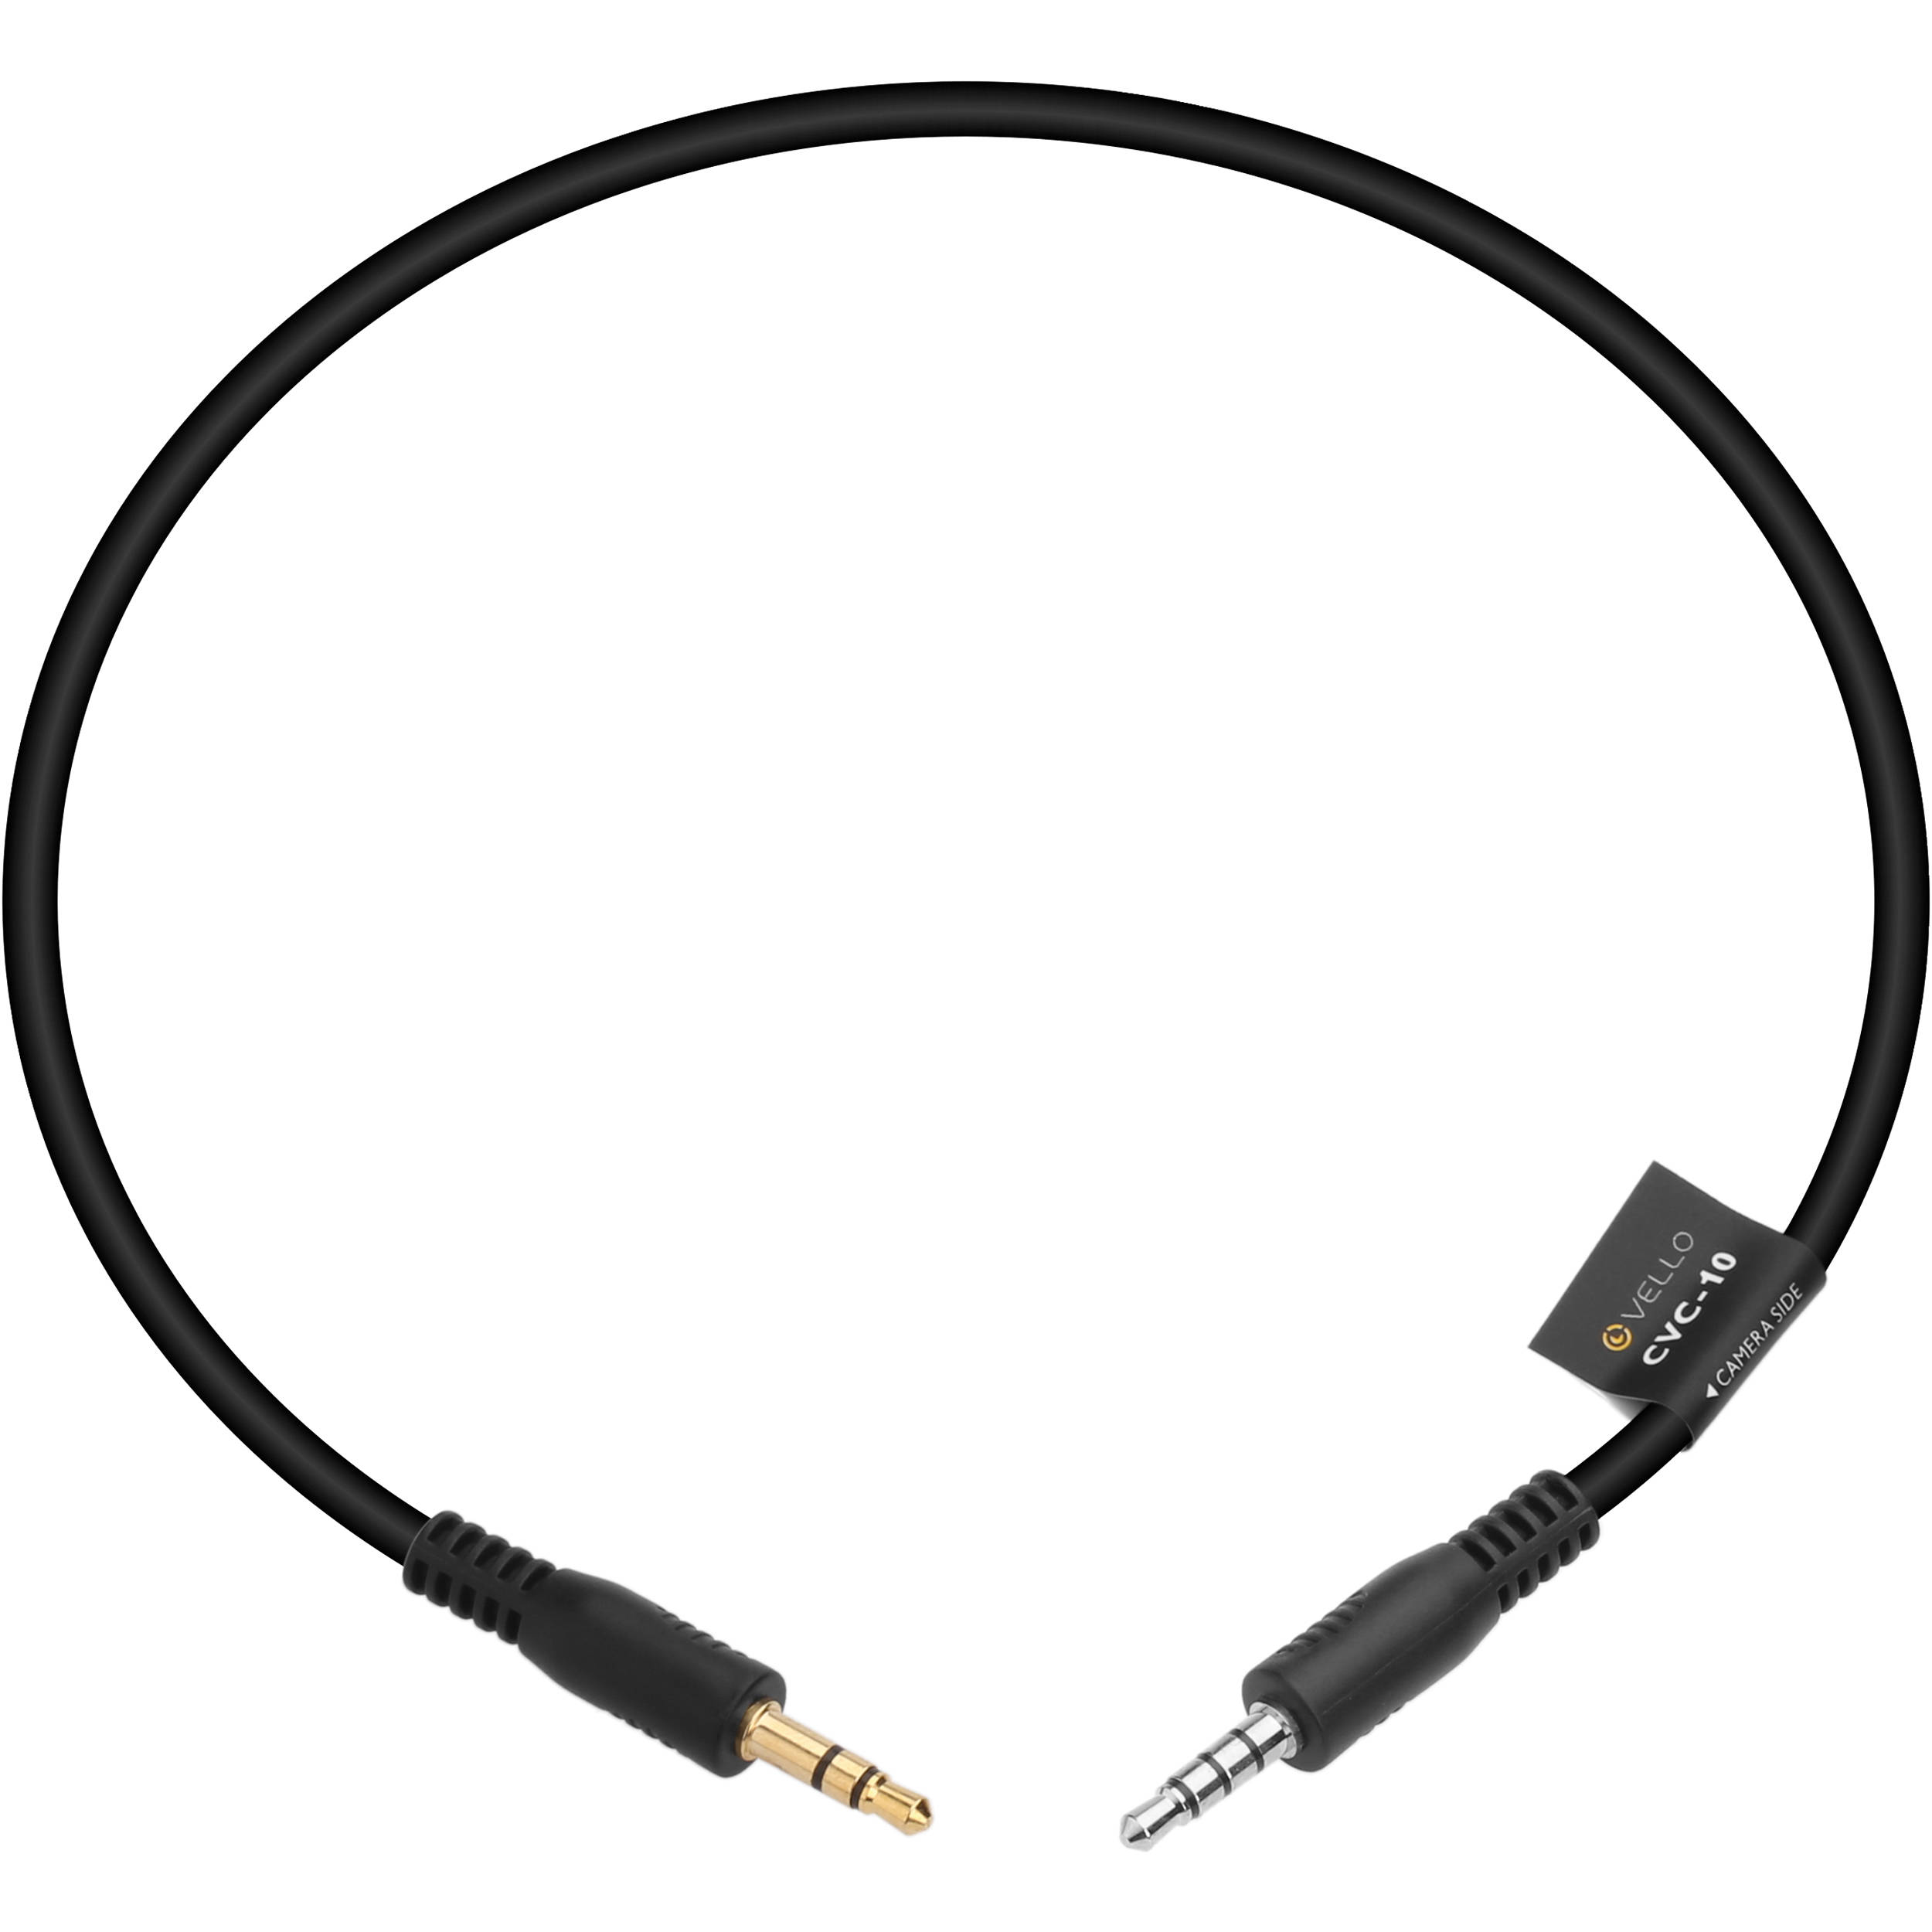 Https C Product 1082731 Reg Wiring Diagram Composite Video Cable To 15hd And S Vello Cvc 10 Freewave Viewer 1042613